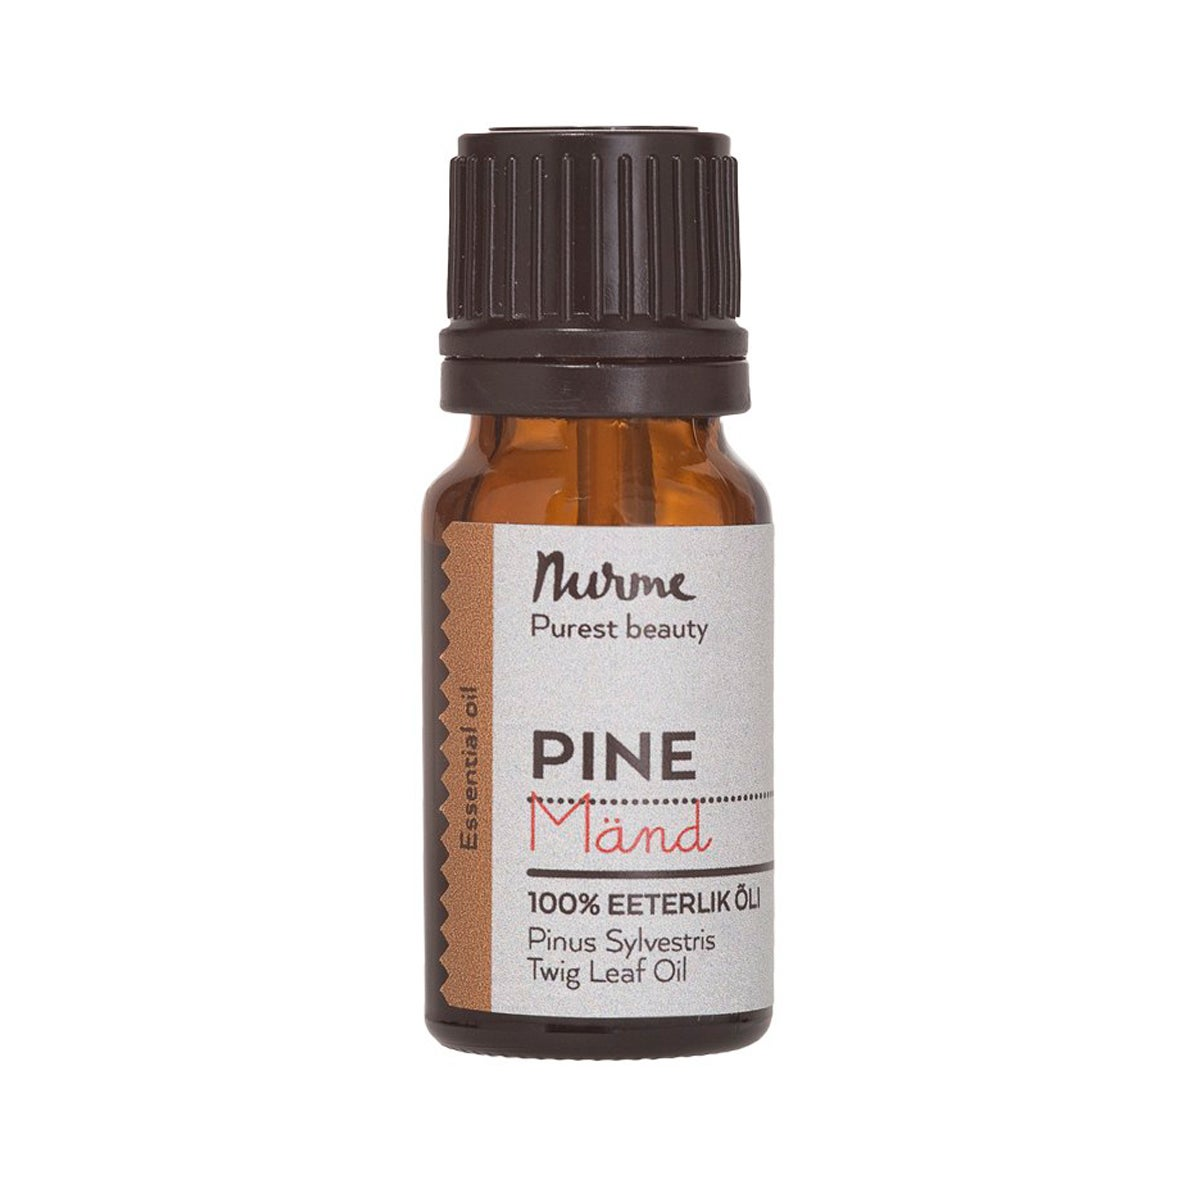 Nurme Pine Essential Oil